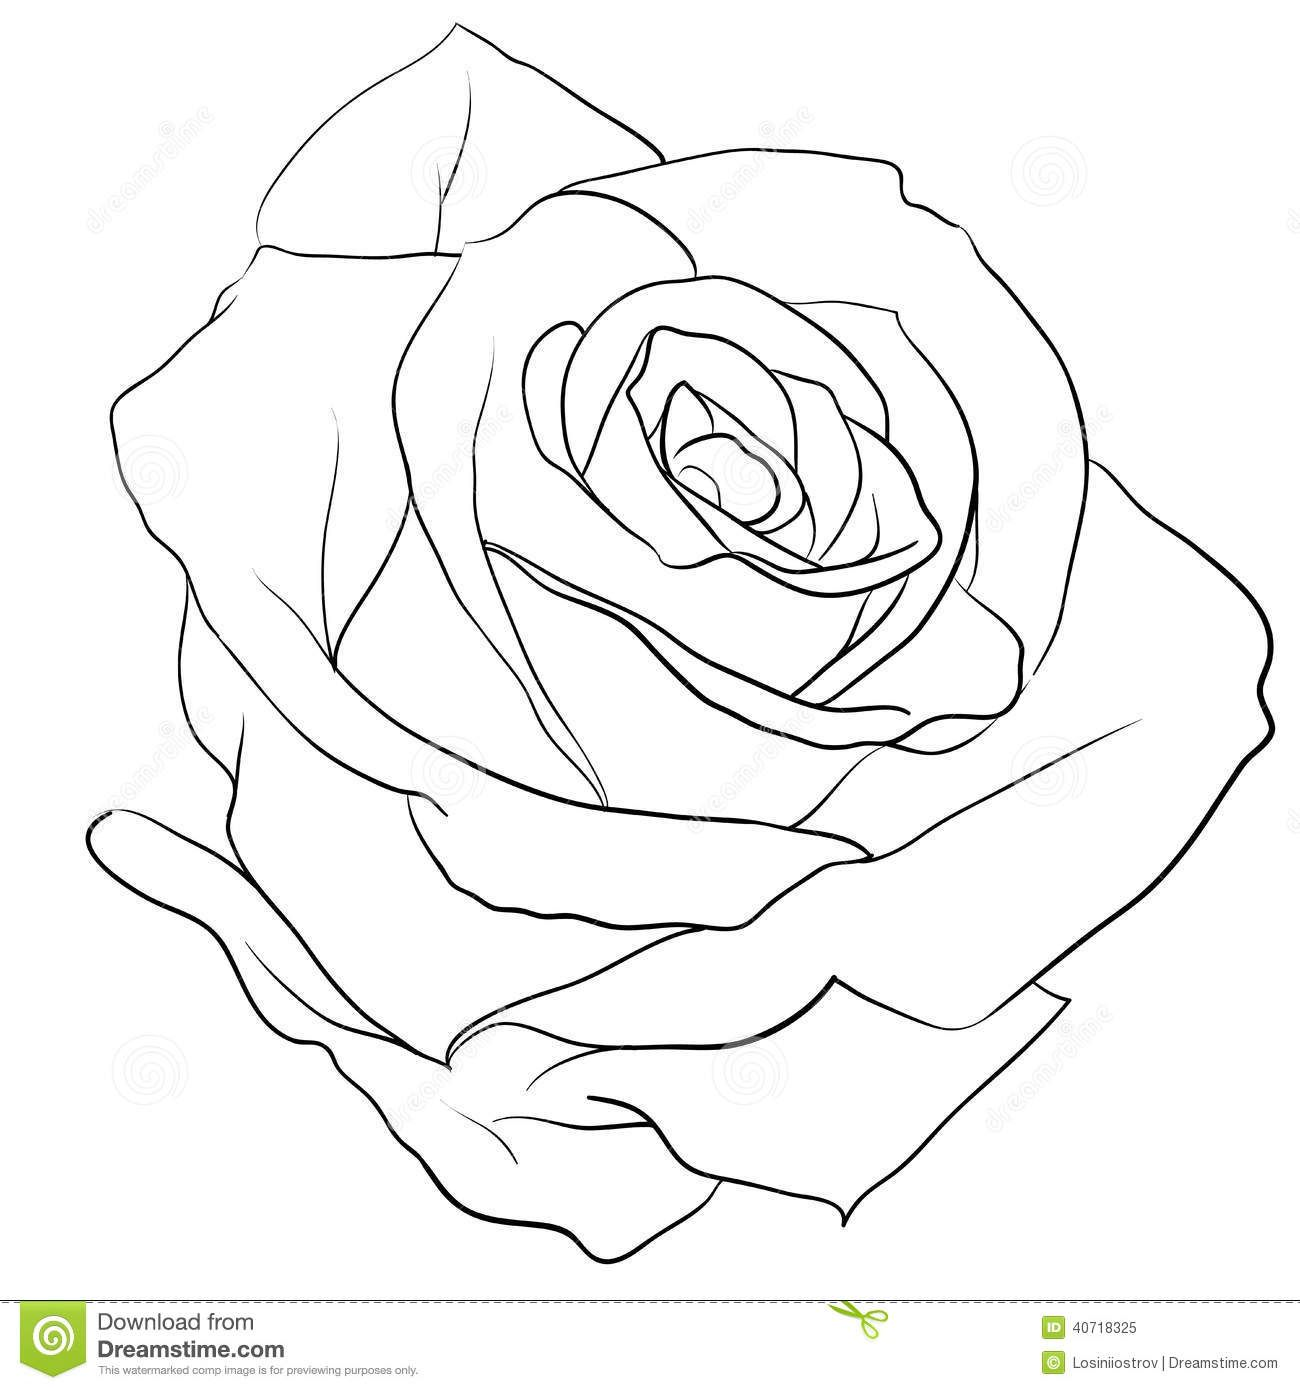 realistic rose flower coloring pages pinterest rose colouring page for adults google search flower realistic coloring rose pages